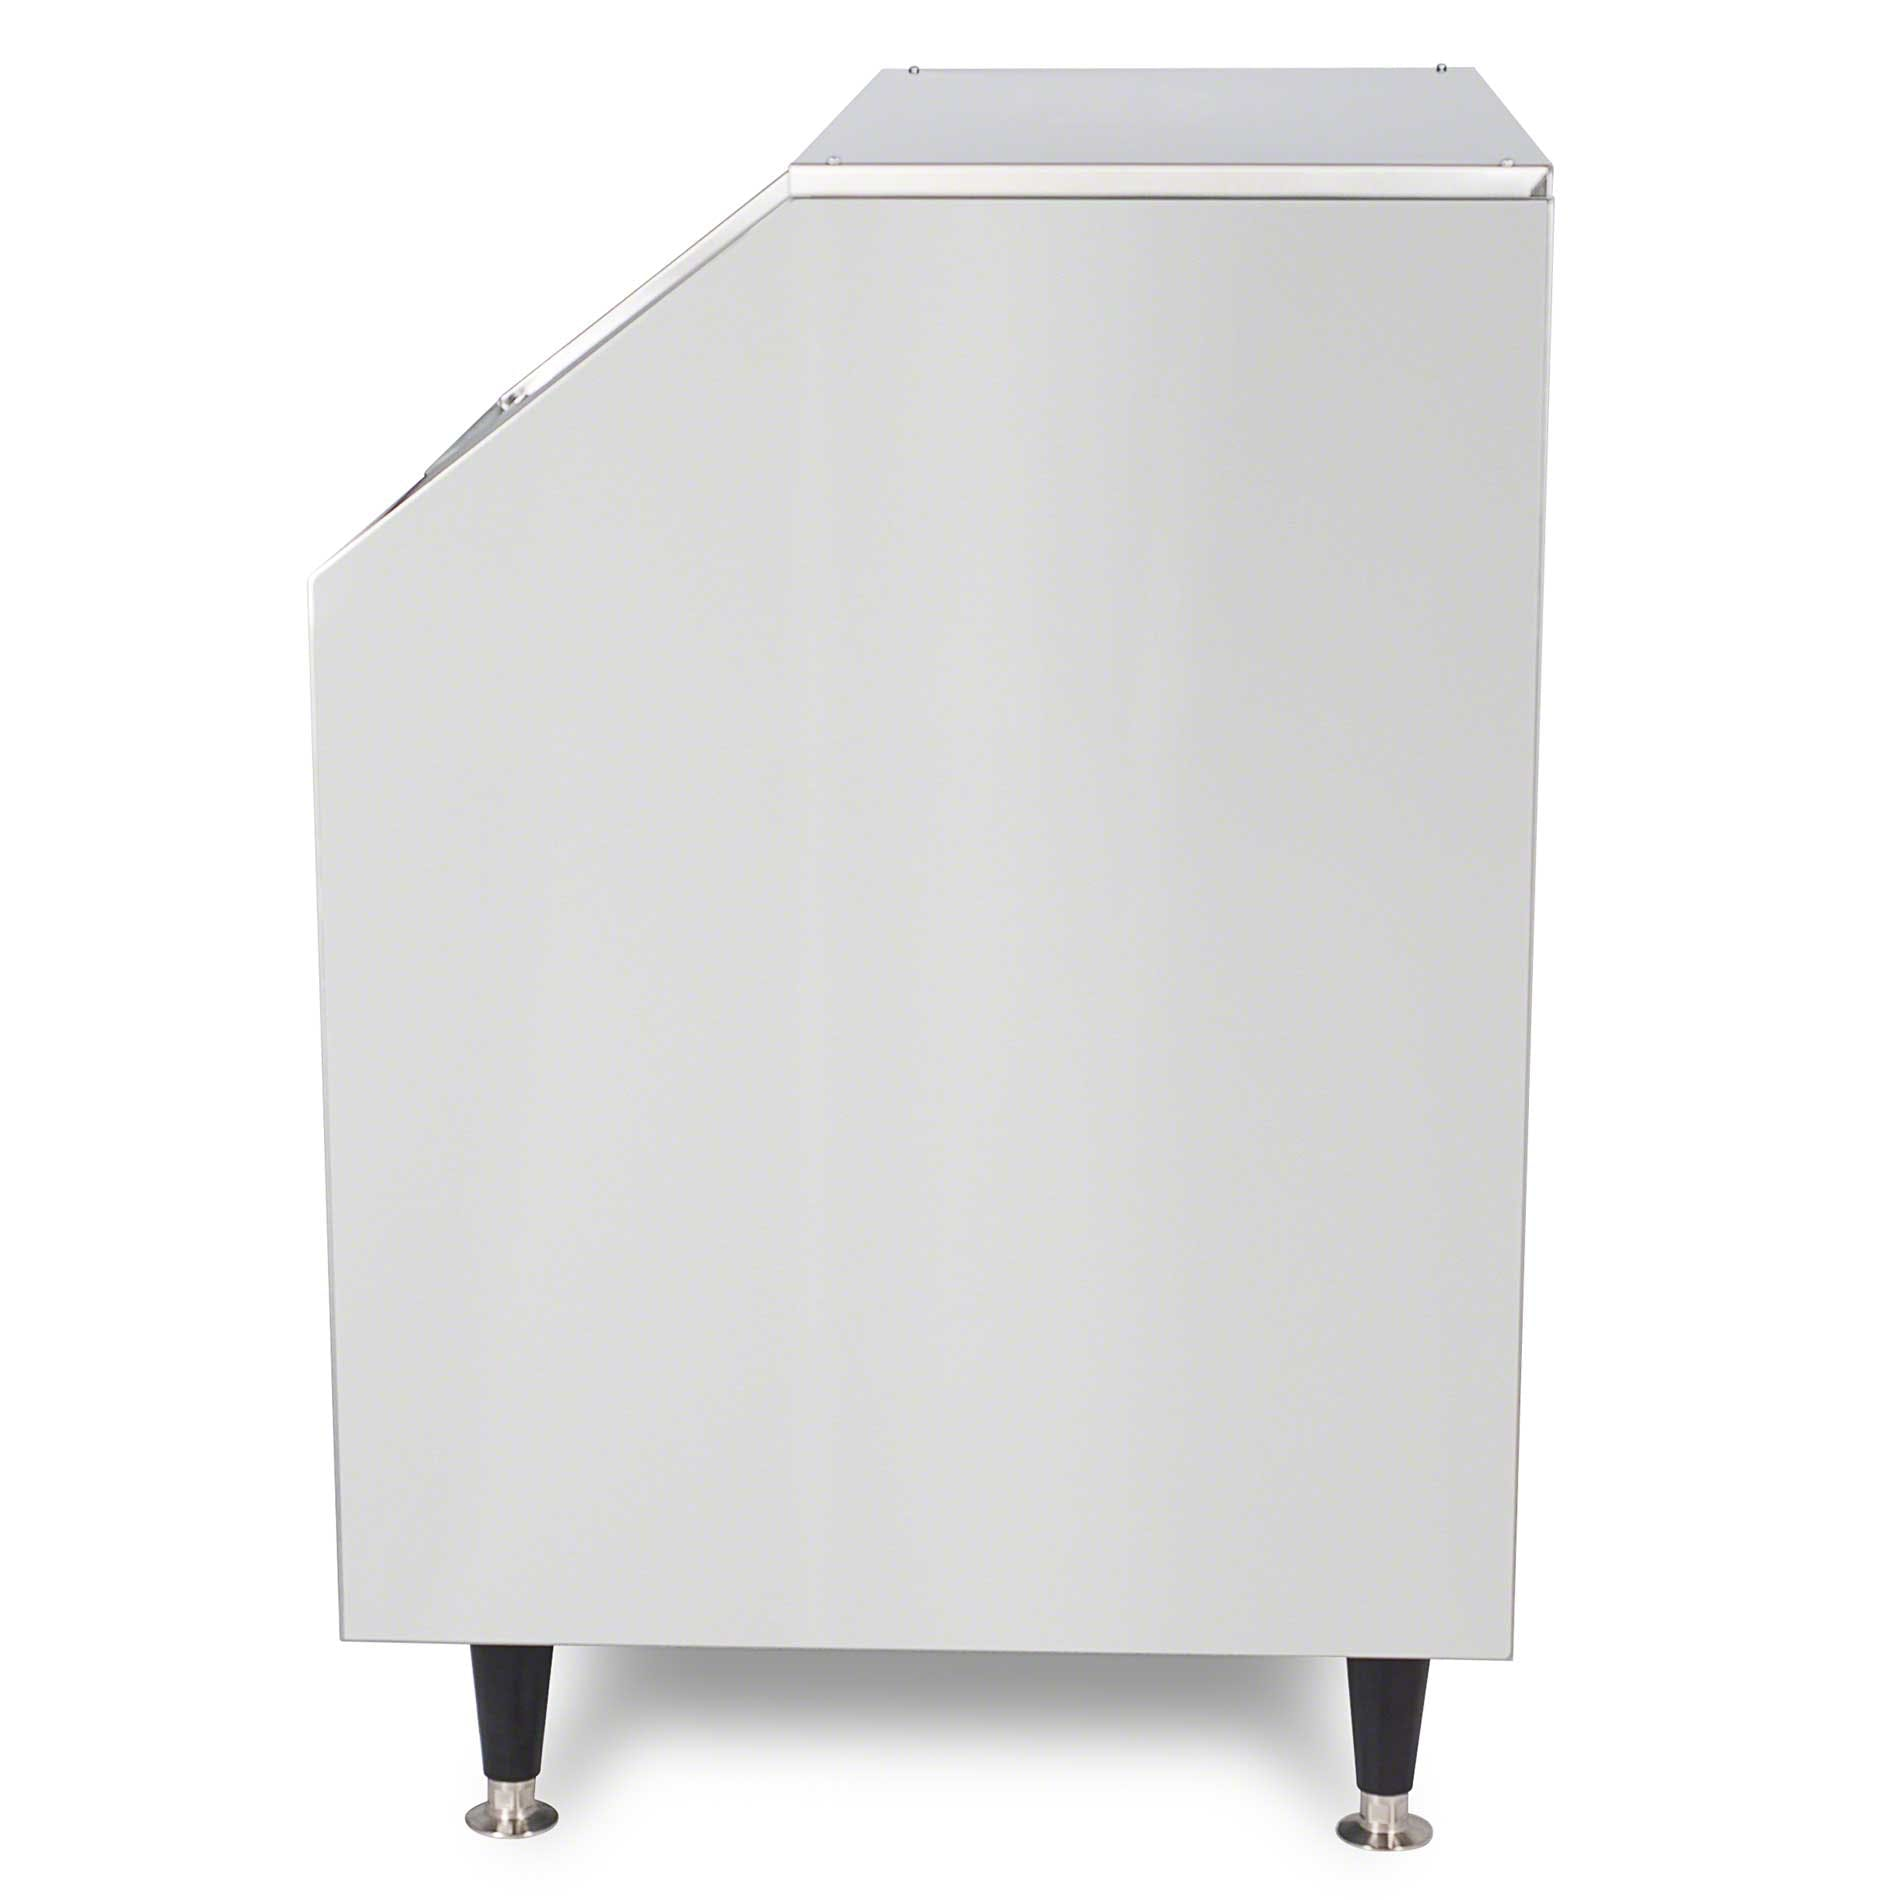 Ice-O-Matic - EF250A38S 400 lb Self-Contained Flake Ice Machine Ice machine sold by Food Service Warehouse